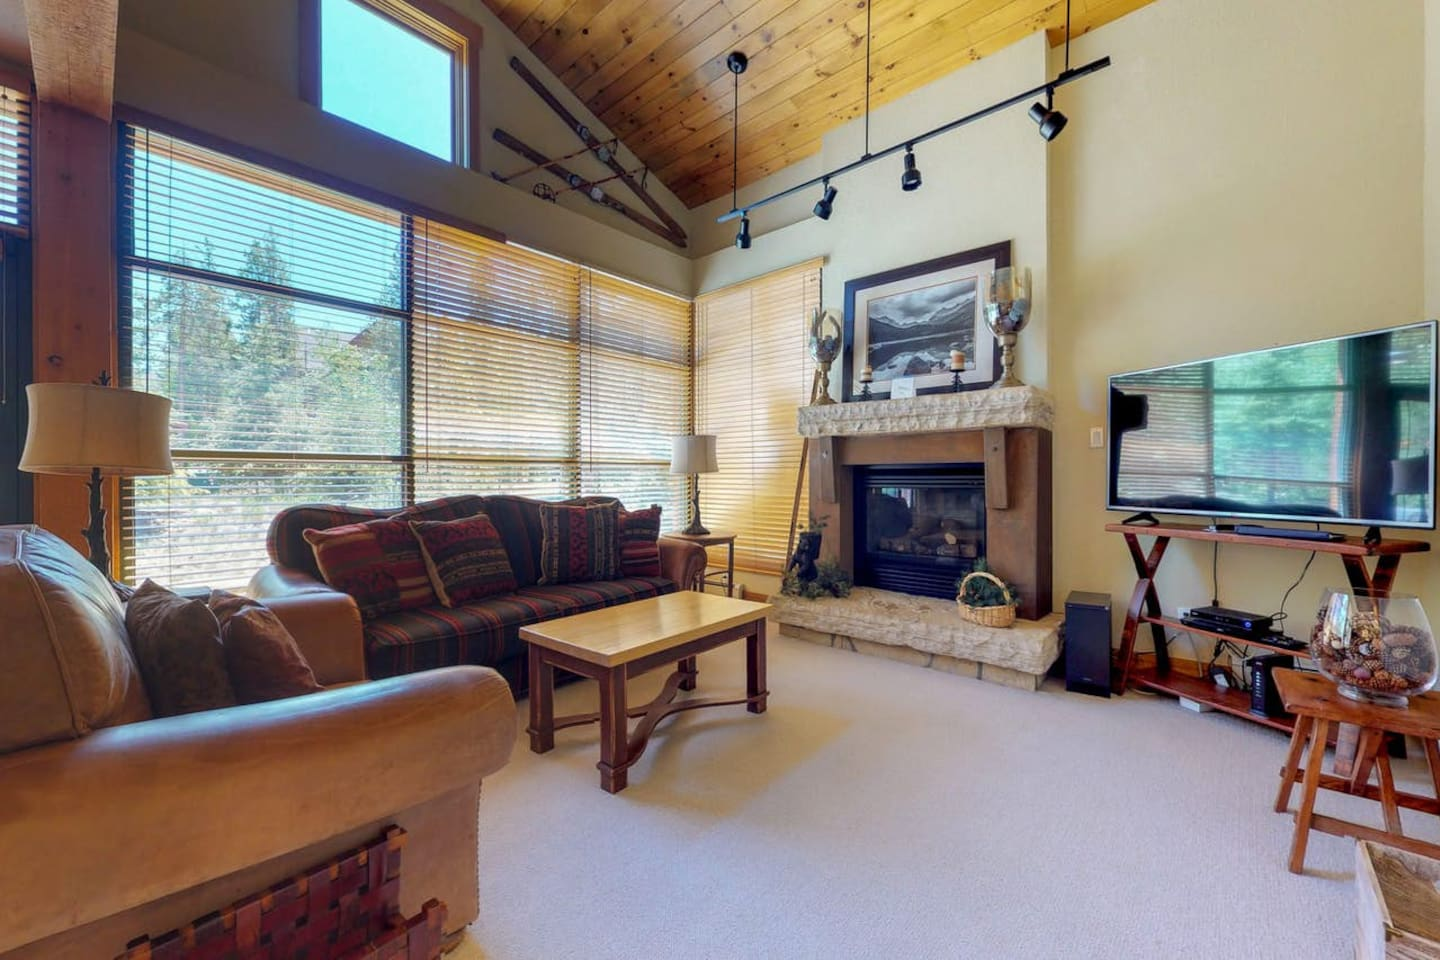 3 bedroom vacation rental at Ski Tip Townhomes in Keystone, CO